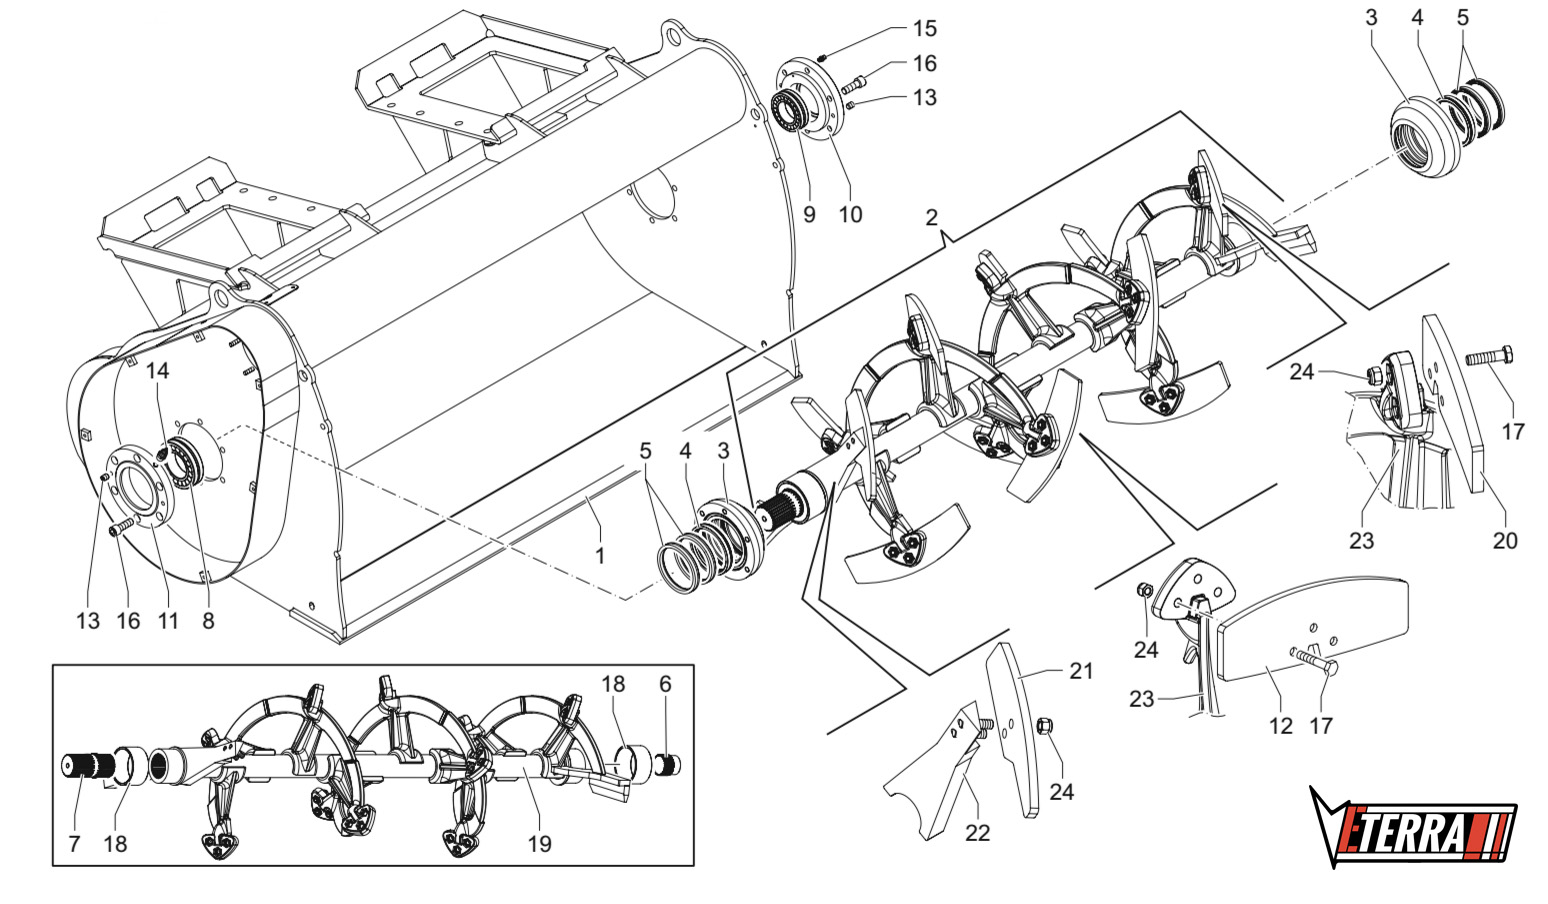 small resolution of the eterra skid steer cement mixer attachment parts information